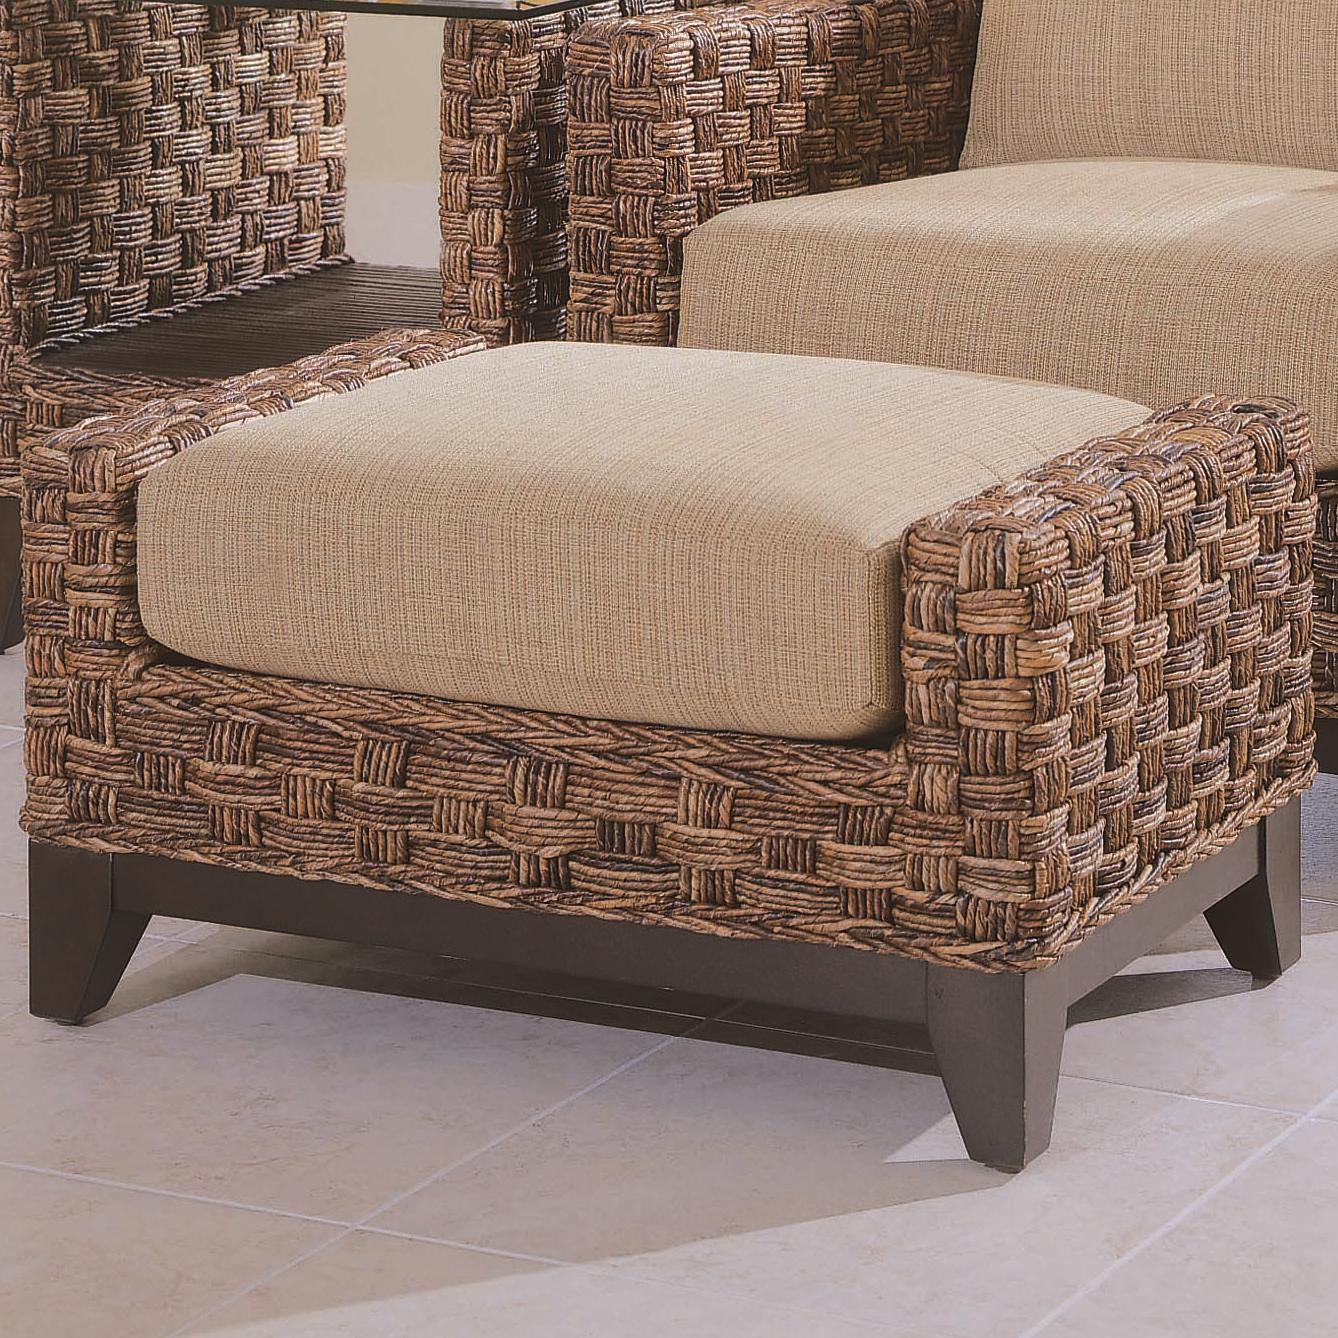 Tribeca 2960 Ottoman by Braxton Culler at Jacksonville Furniture Mart